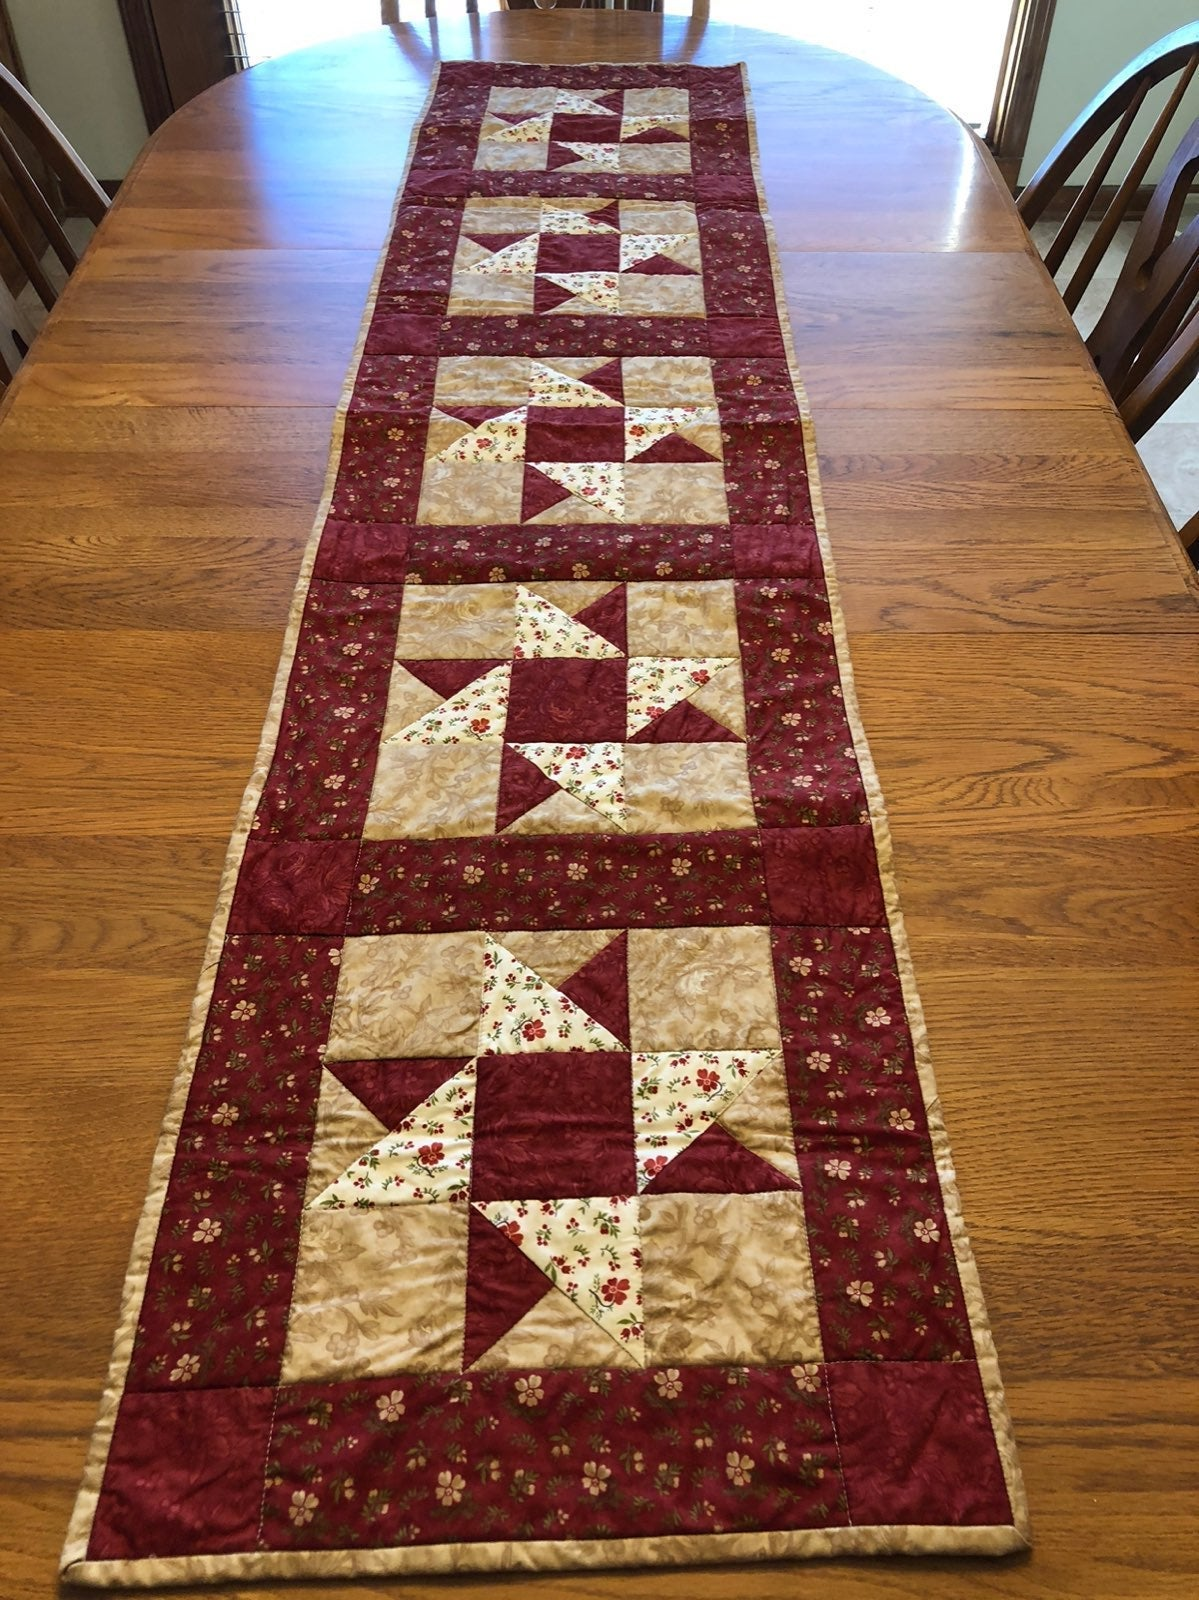 Hamdmade quilted fall table runner